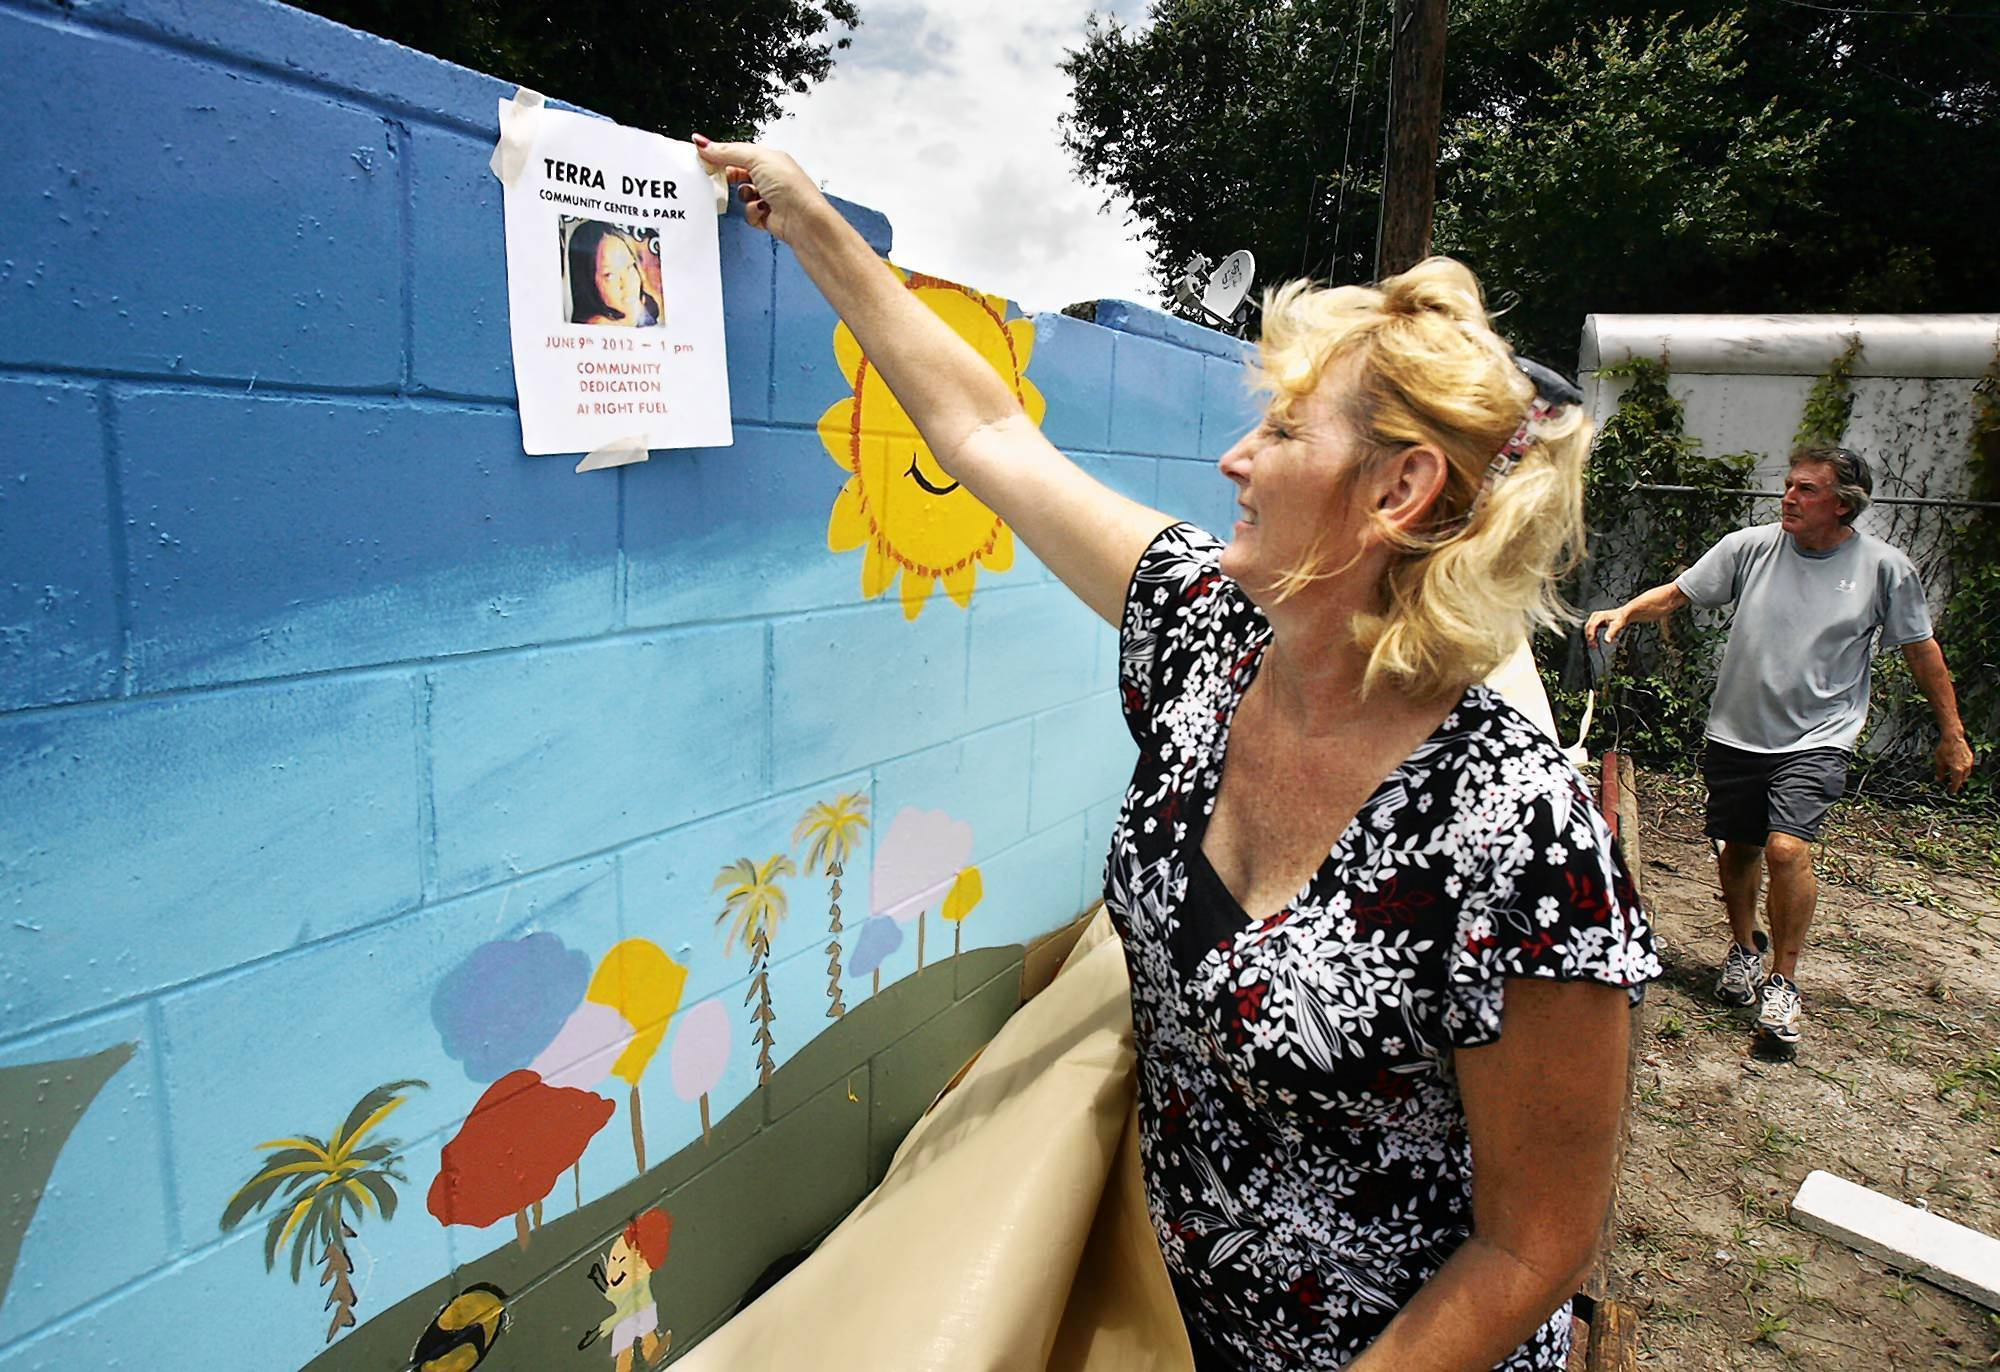 Rebecca Rae unveils a mural painted on a wall during a dedication ceremony for a community park in the Holden Heights community on Saturday. The park is dedicated to Terra Dyer, an 18-year-old woman who was killed nearby.